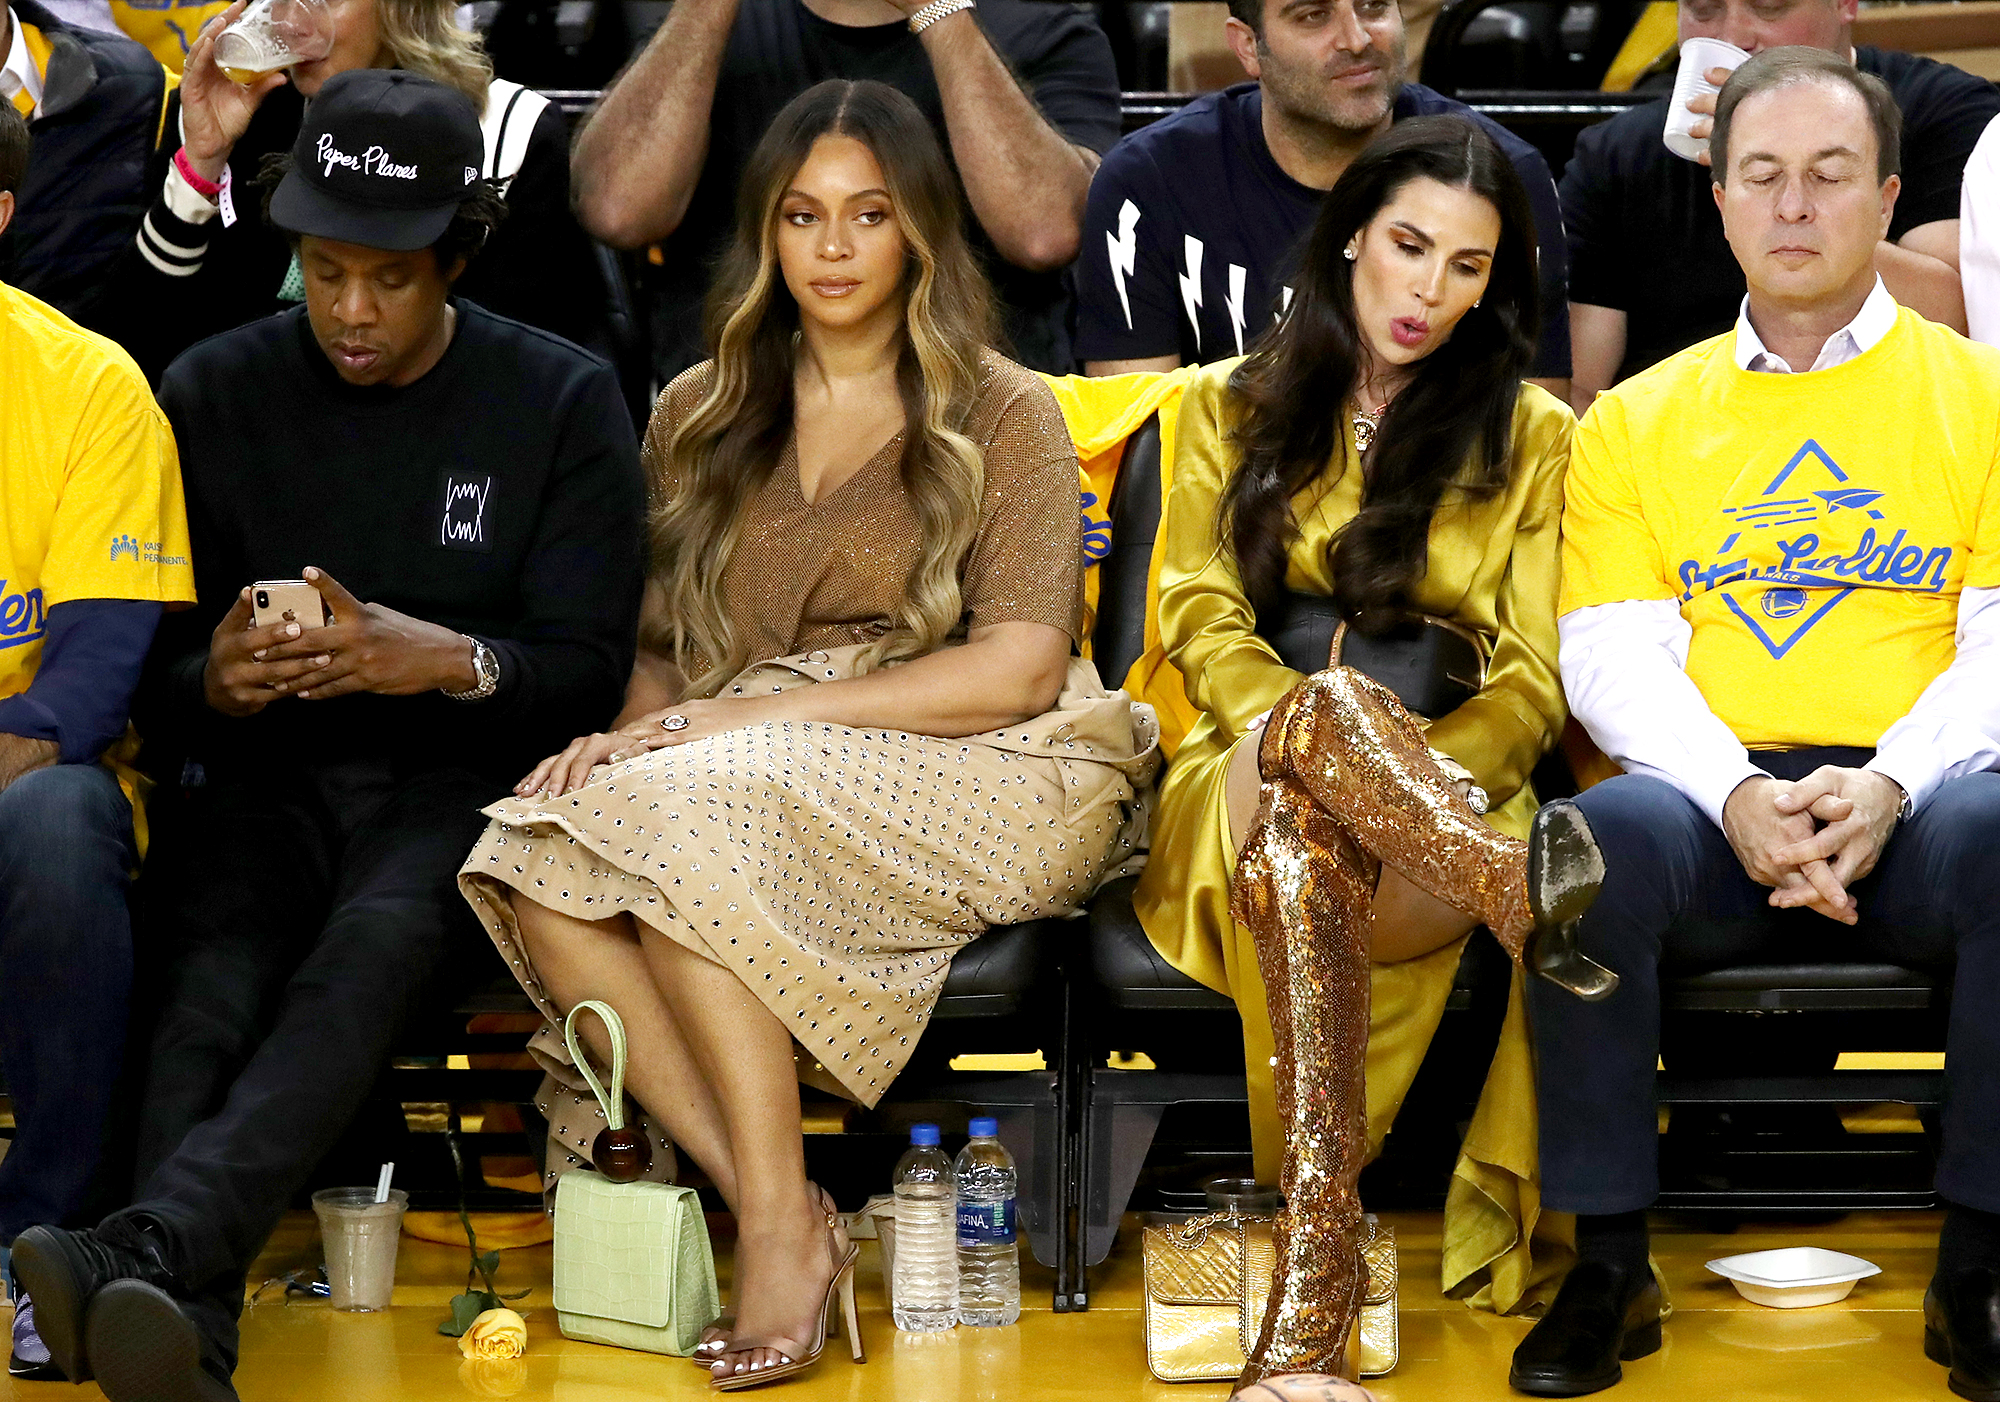 Beyonce's-Publicist-Reminds-Beyhive-to-Not-'Spew-Hate'-After-Nicole-Curran-Drama-at-NBA-Finals